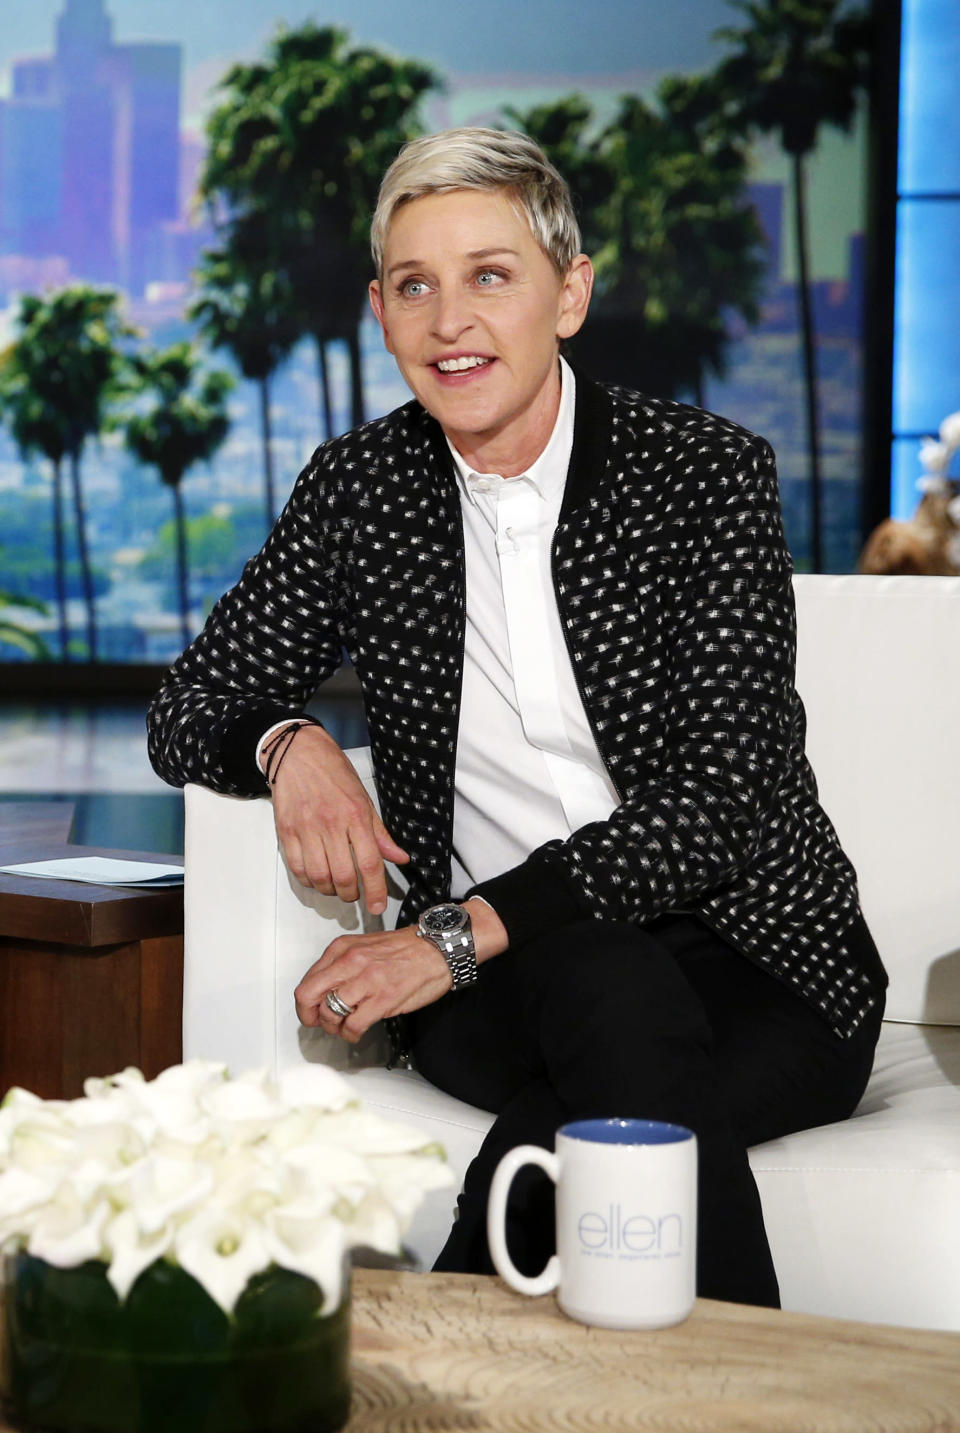 """FILE - Ellen DeGeneres appears during a taping of the """"The Ellen DeGeneres Show,"""" in Burbank, Calif. on May 24, 2016. DeGeneres, who has seen ratings hit after allegations of running a toxic workplace, has decided her upcoming season next year will be the last. It coincides with the end of her contract. (AP Photo/John Locher, File)"""